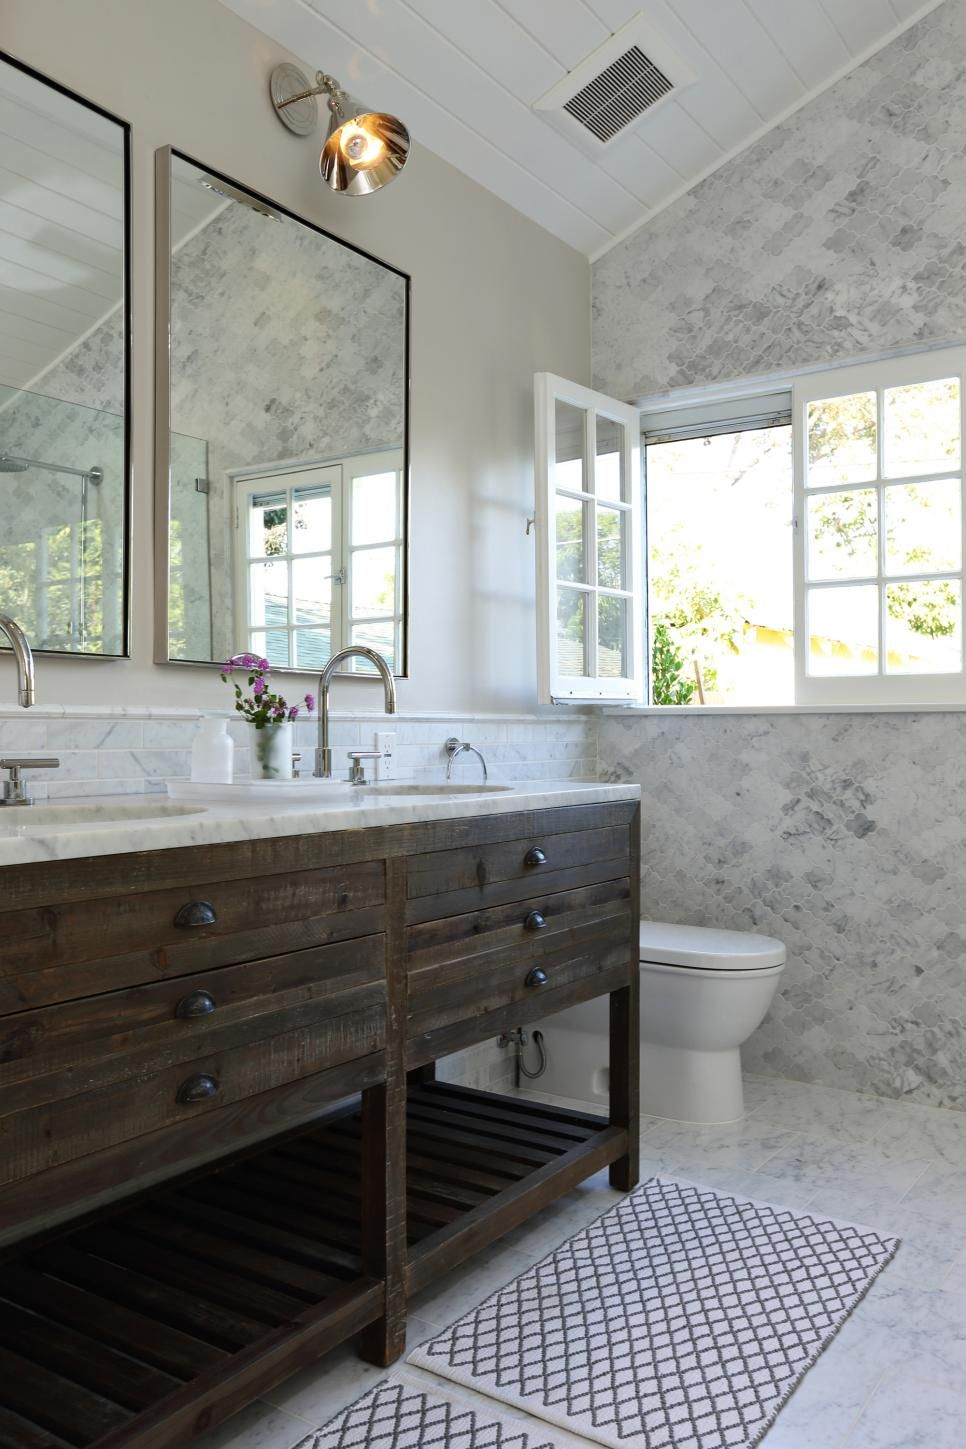 The Rustic Wood Vanity Is A Striking Contrast To The Extravagant Carrara Marb